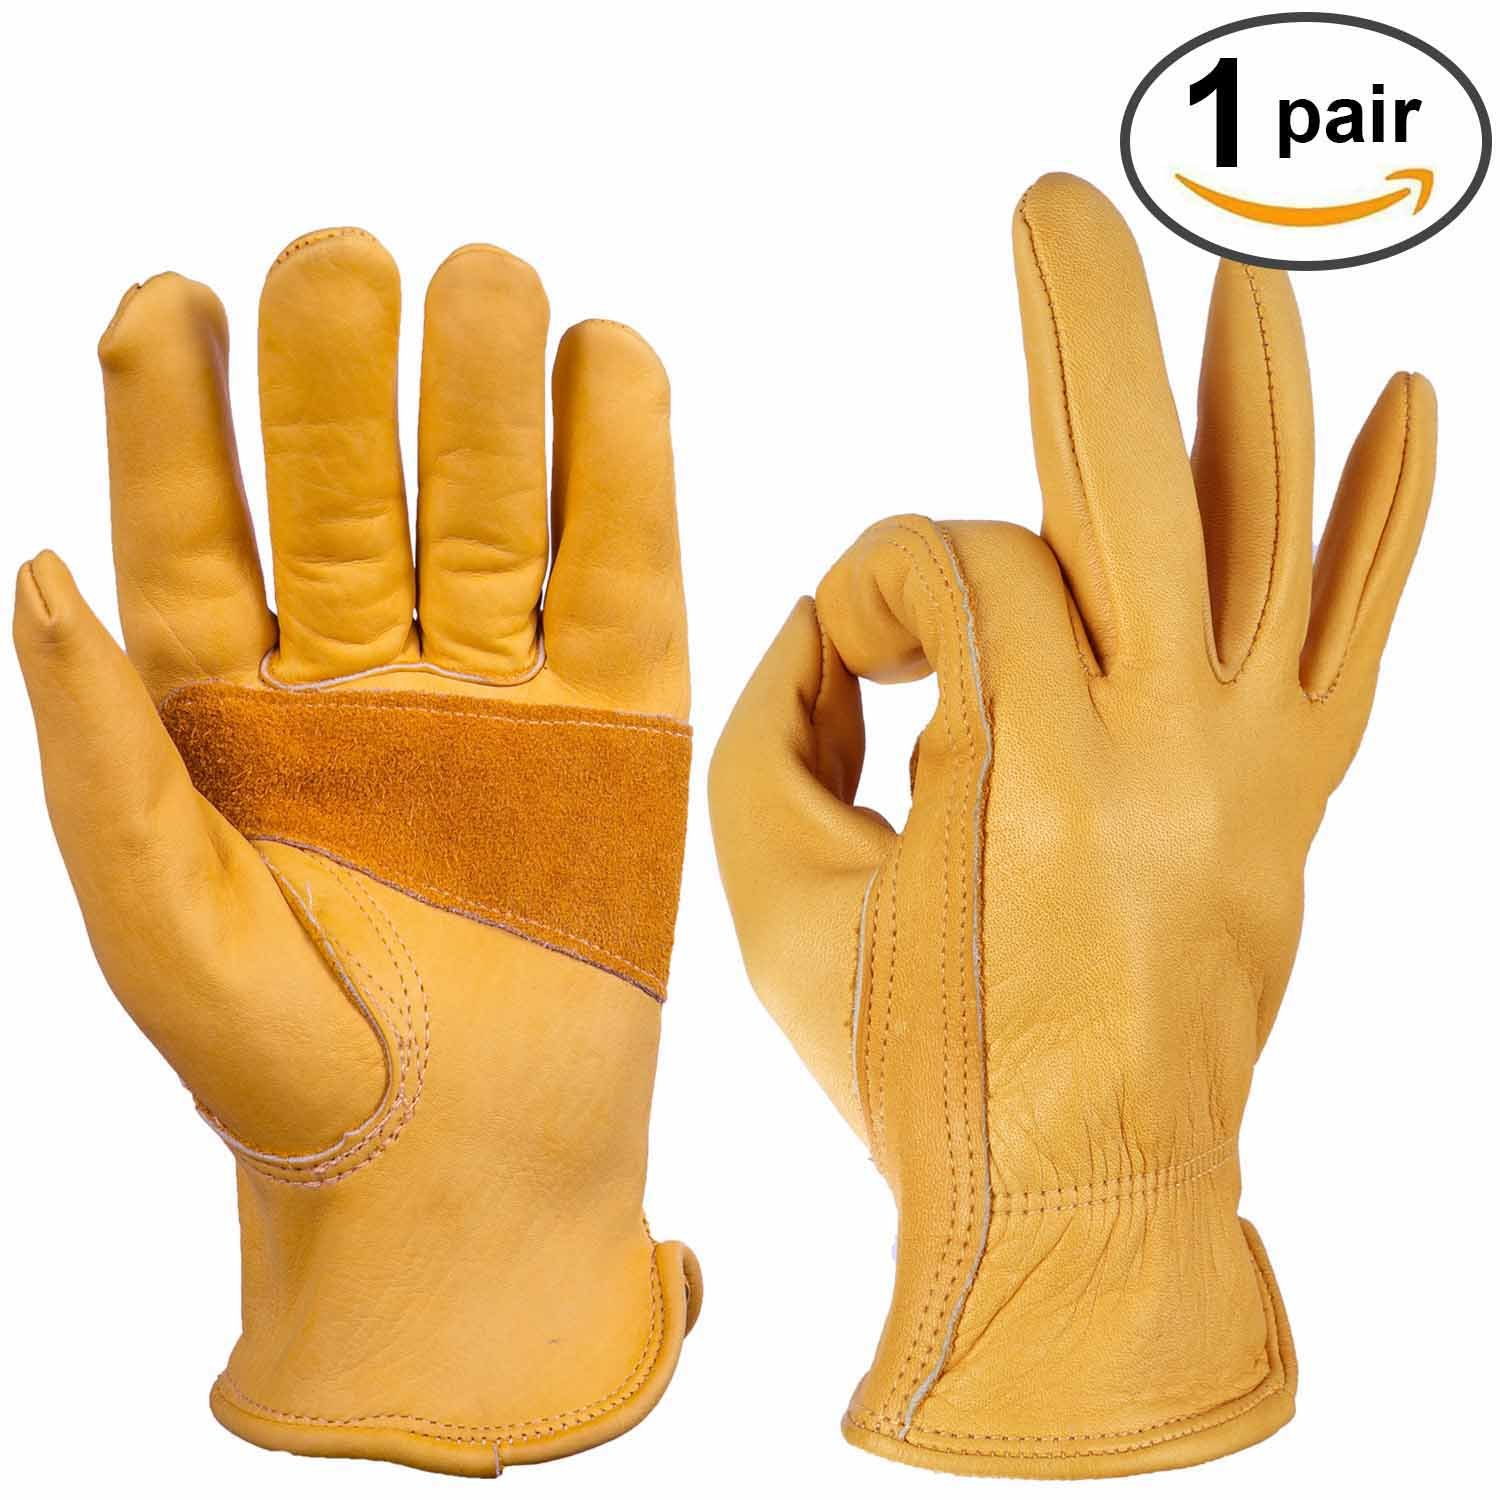 Leather work gloves best price - Ozero Leather Work Gloves For Gardening Men Women With Elastic Wrist Large 1 Pair